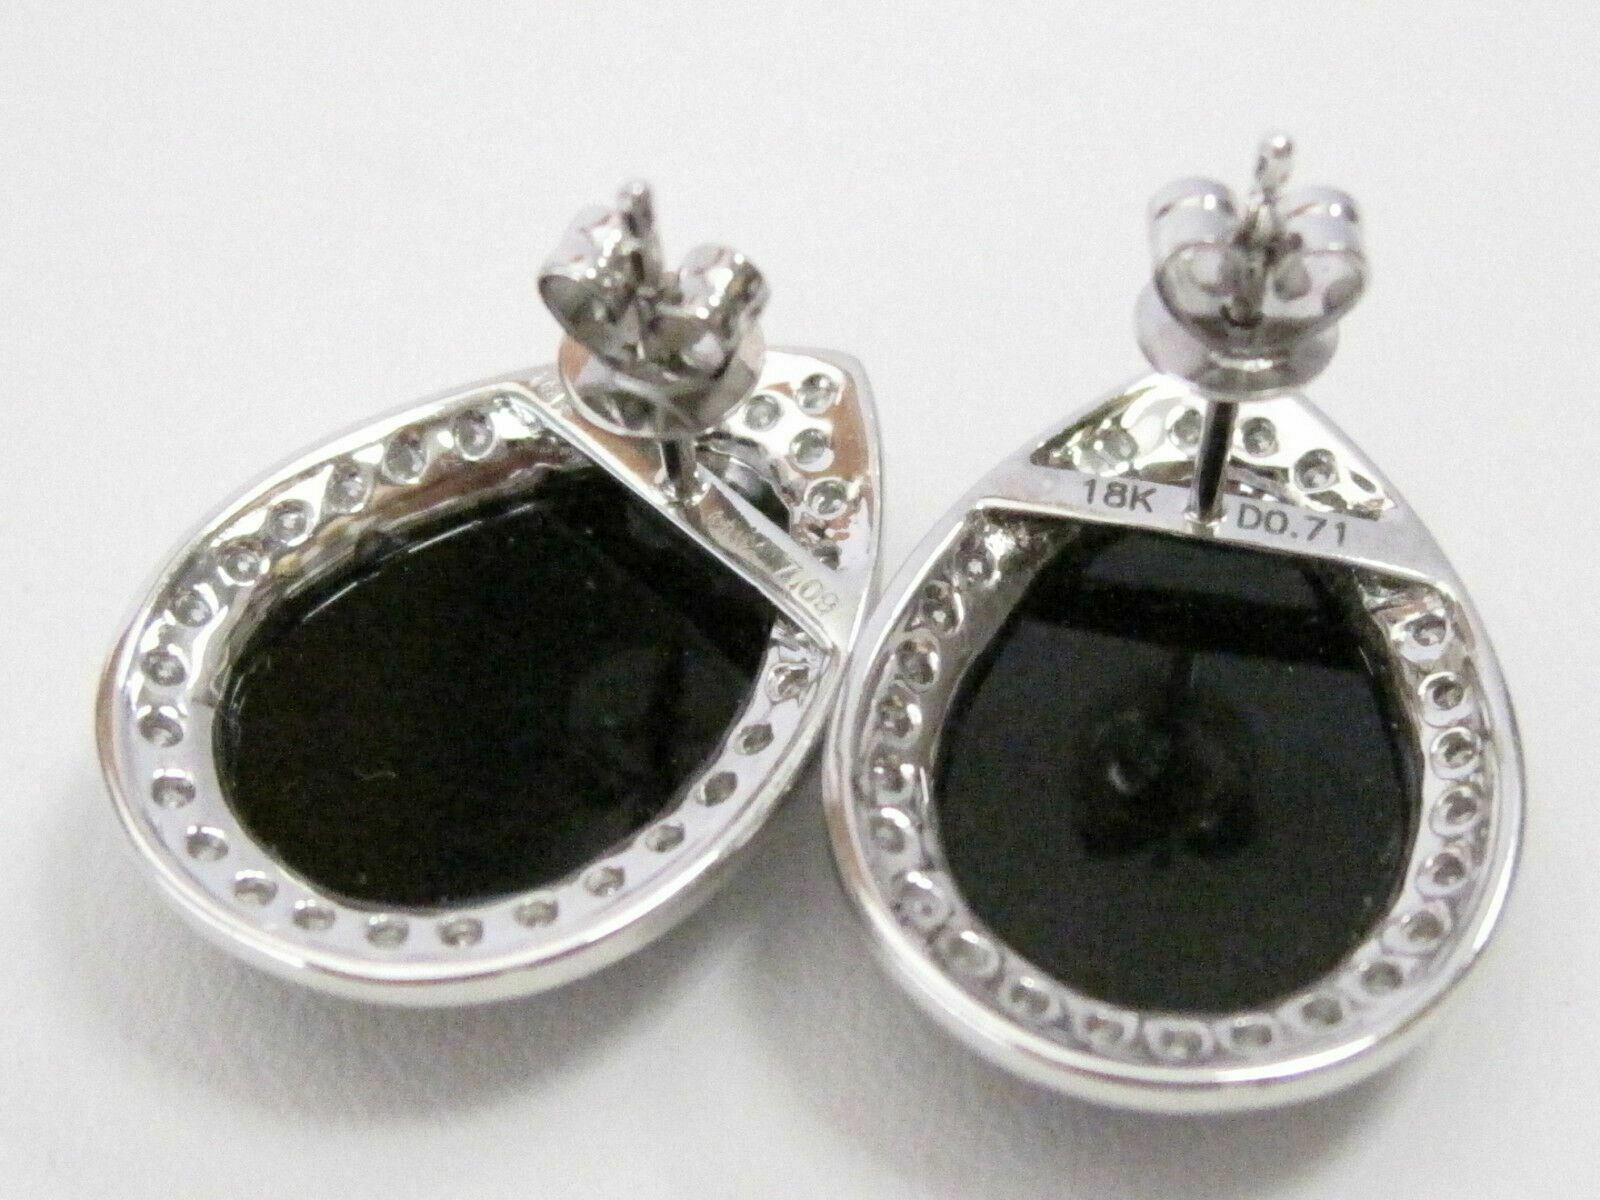 8.70 TCW Natural Pear Shape Black Onyx & White Diamonds Earrings 18k White Gold